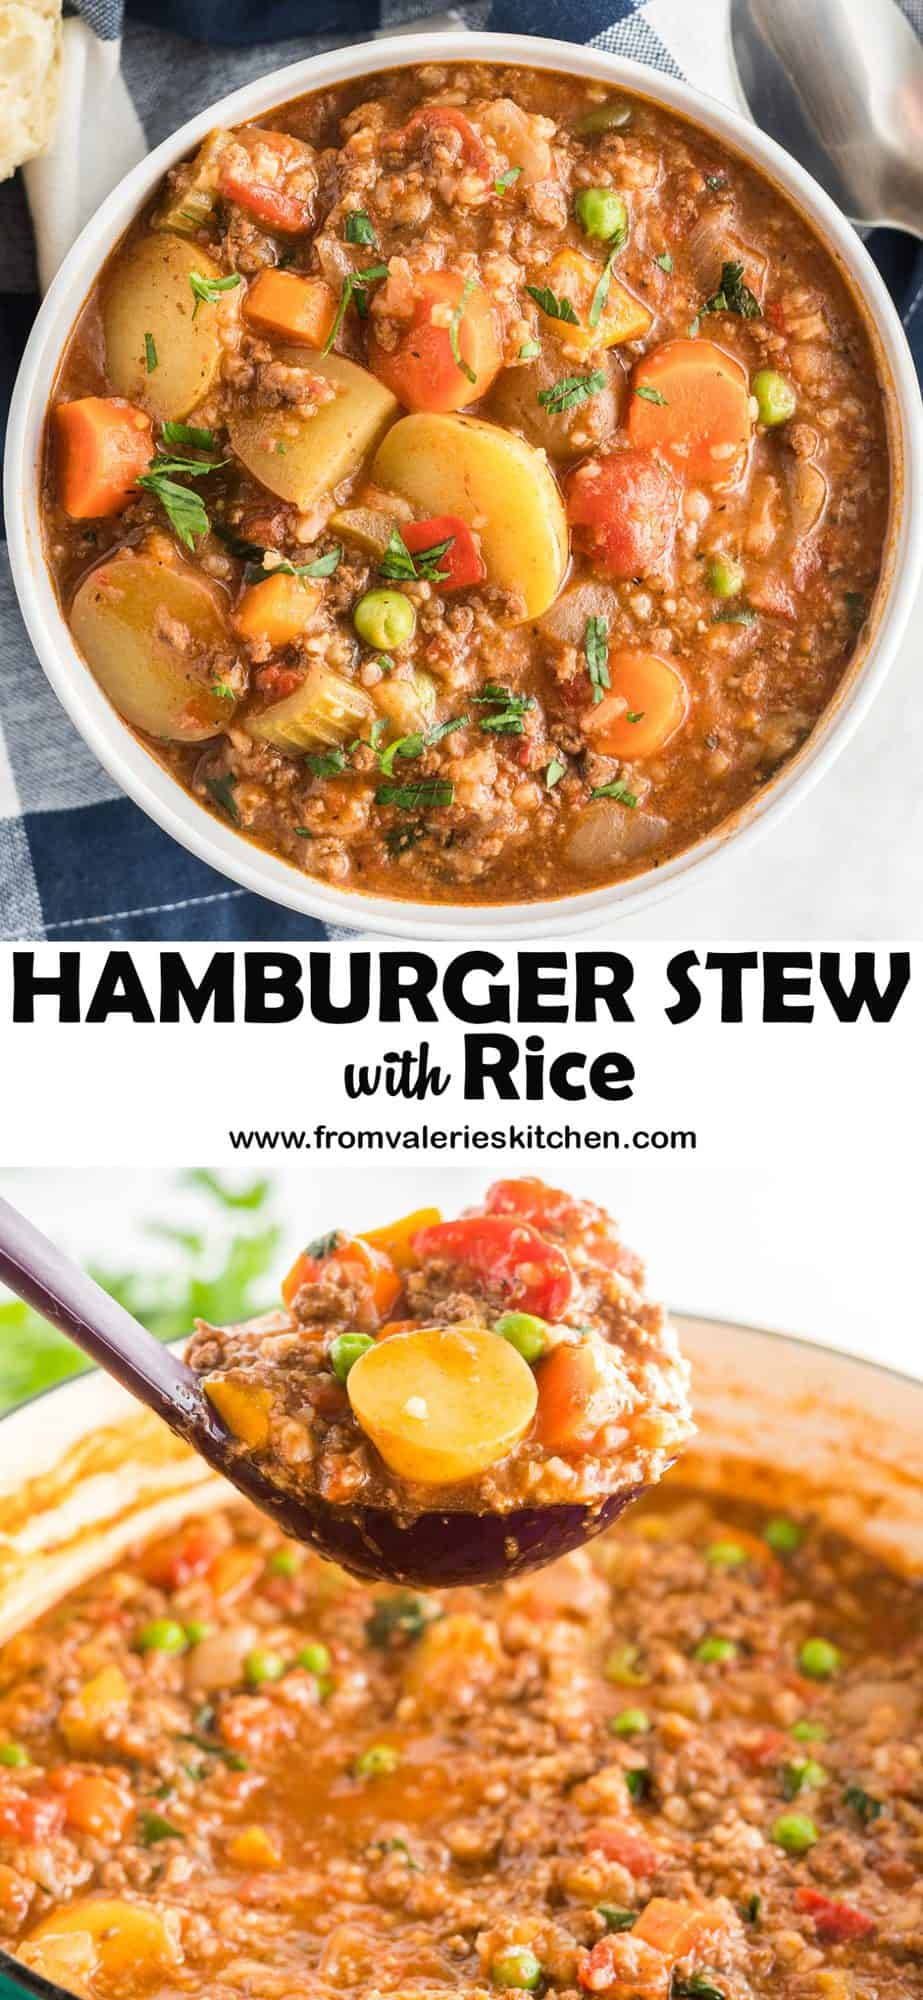 A two image vertical collage of Hamburger Stew with Rice with overlay text.